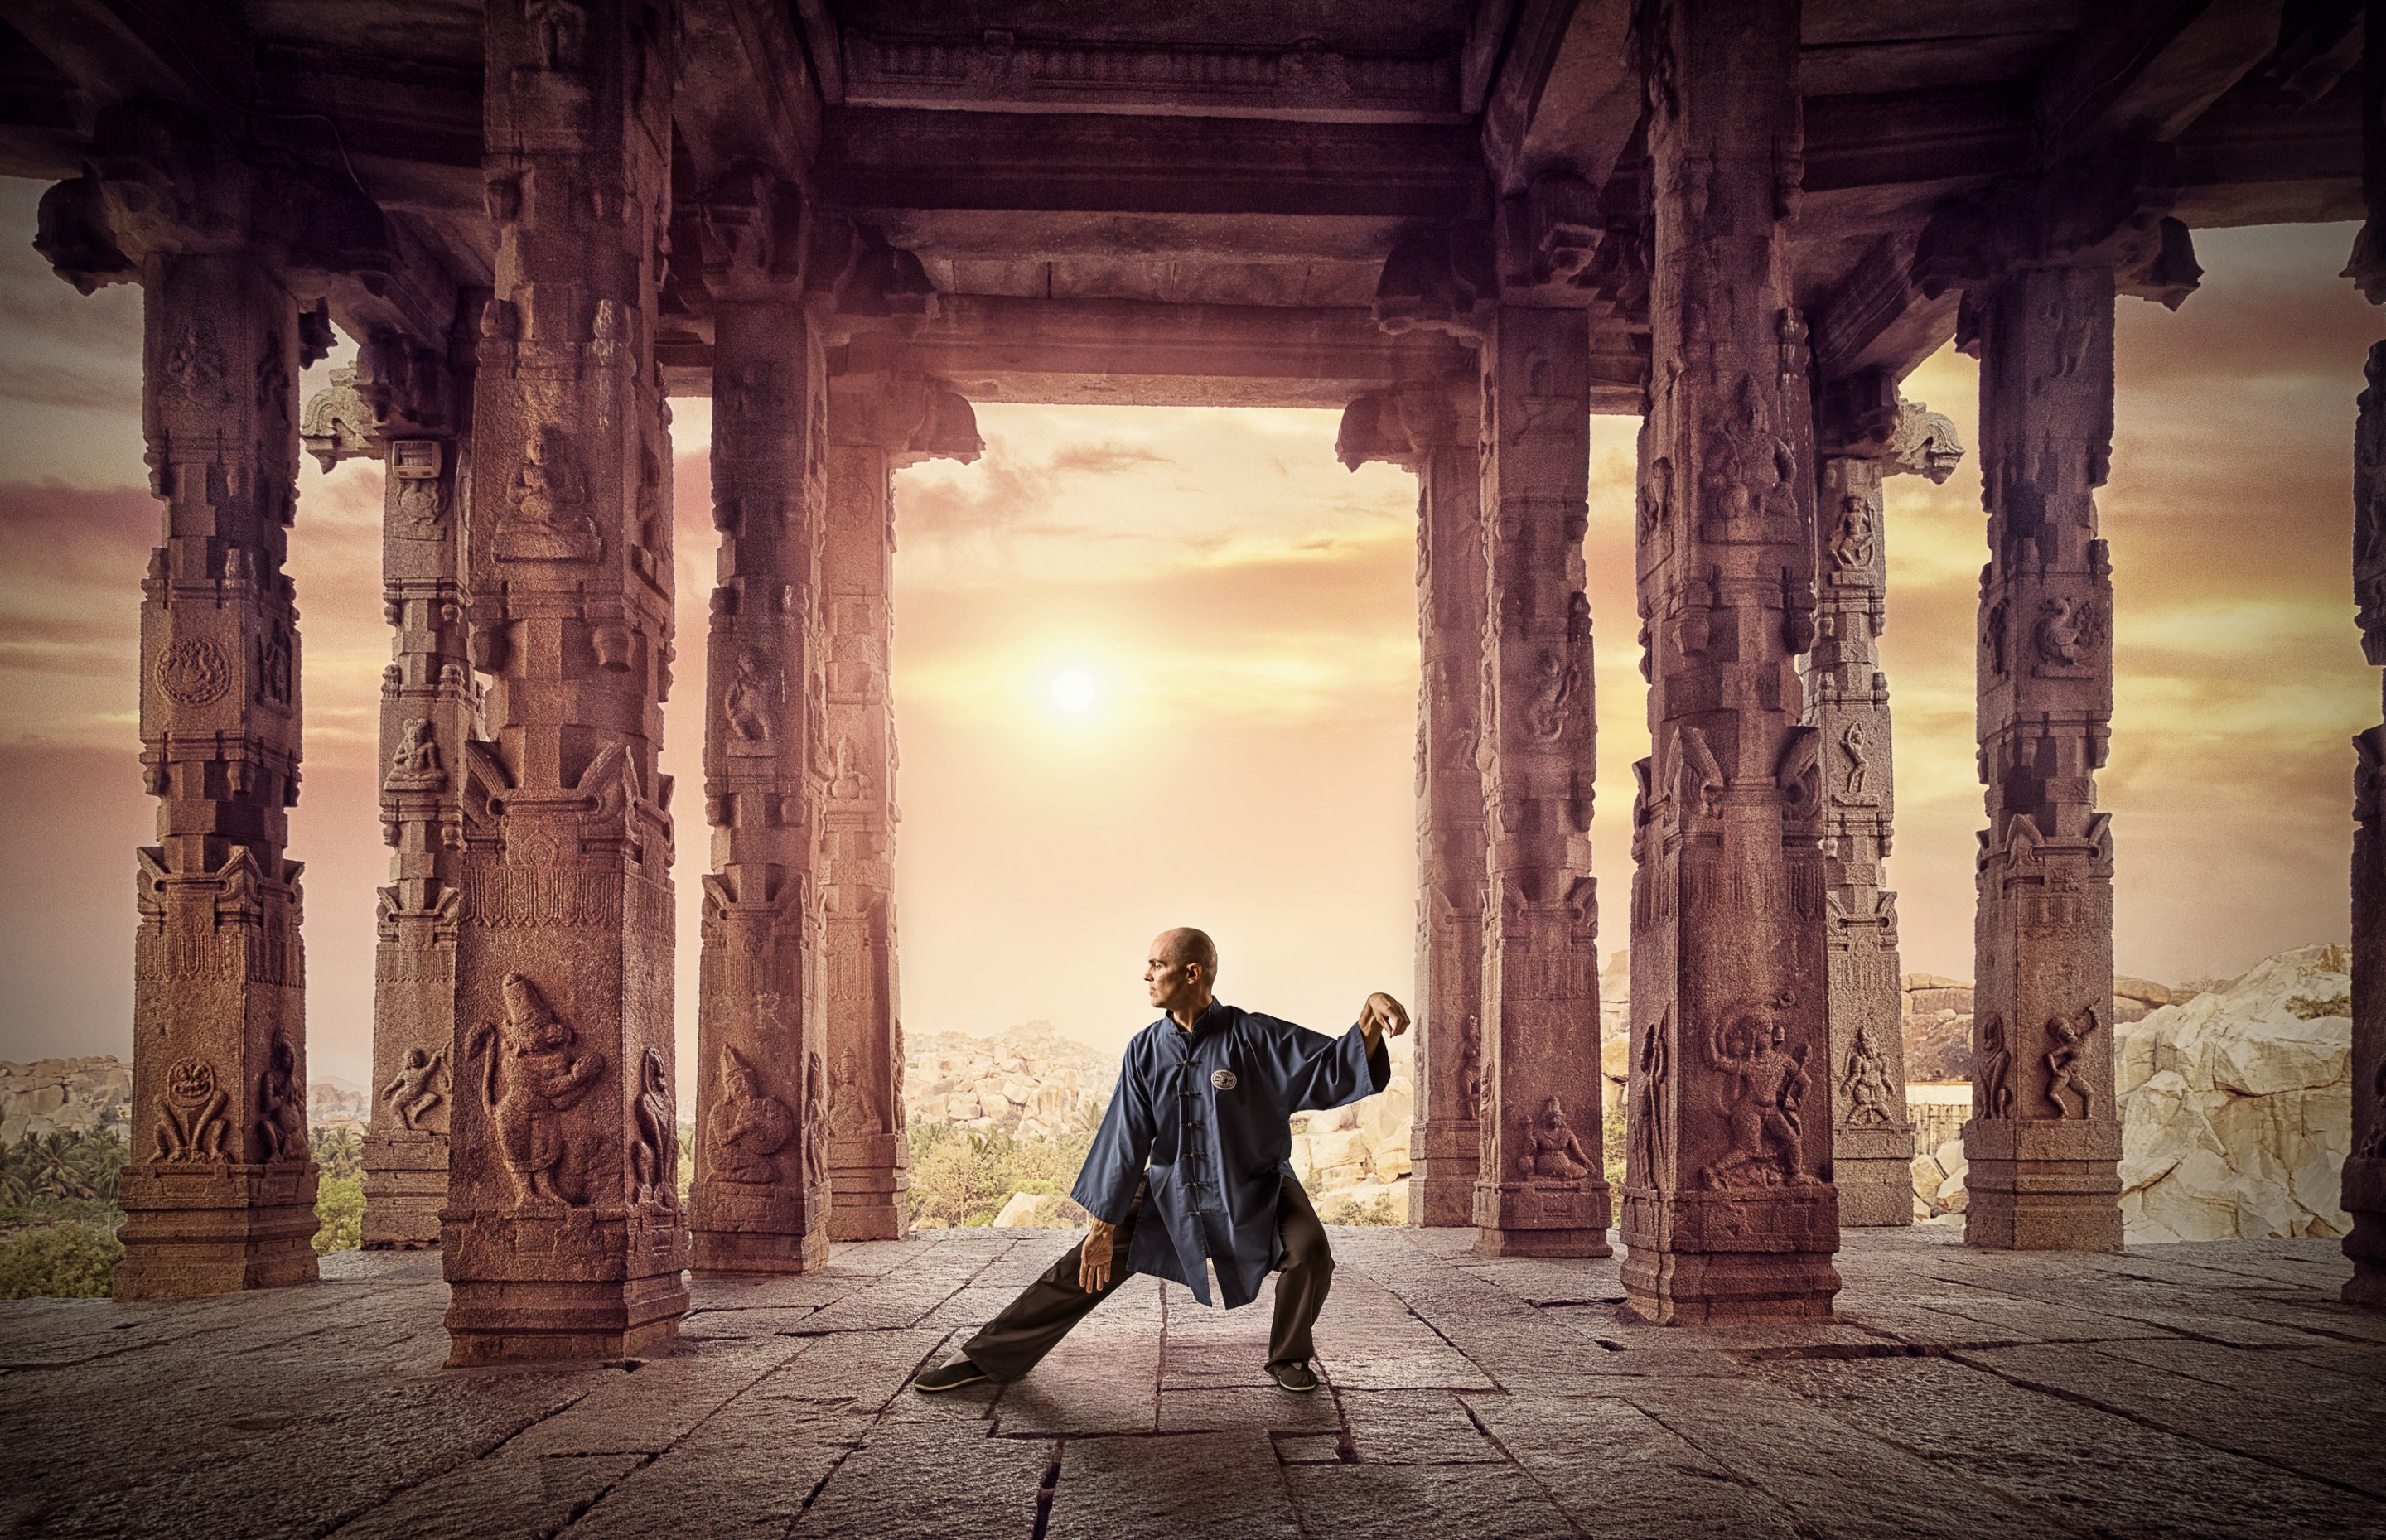 Tai Chi composite photography in temple ruins photographed by Paul Davis Photography, Tucson, Arizona.